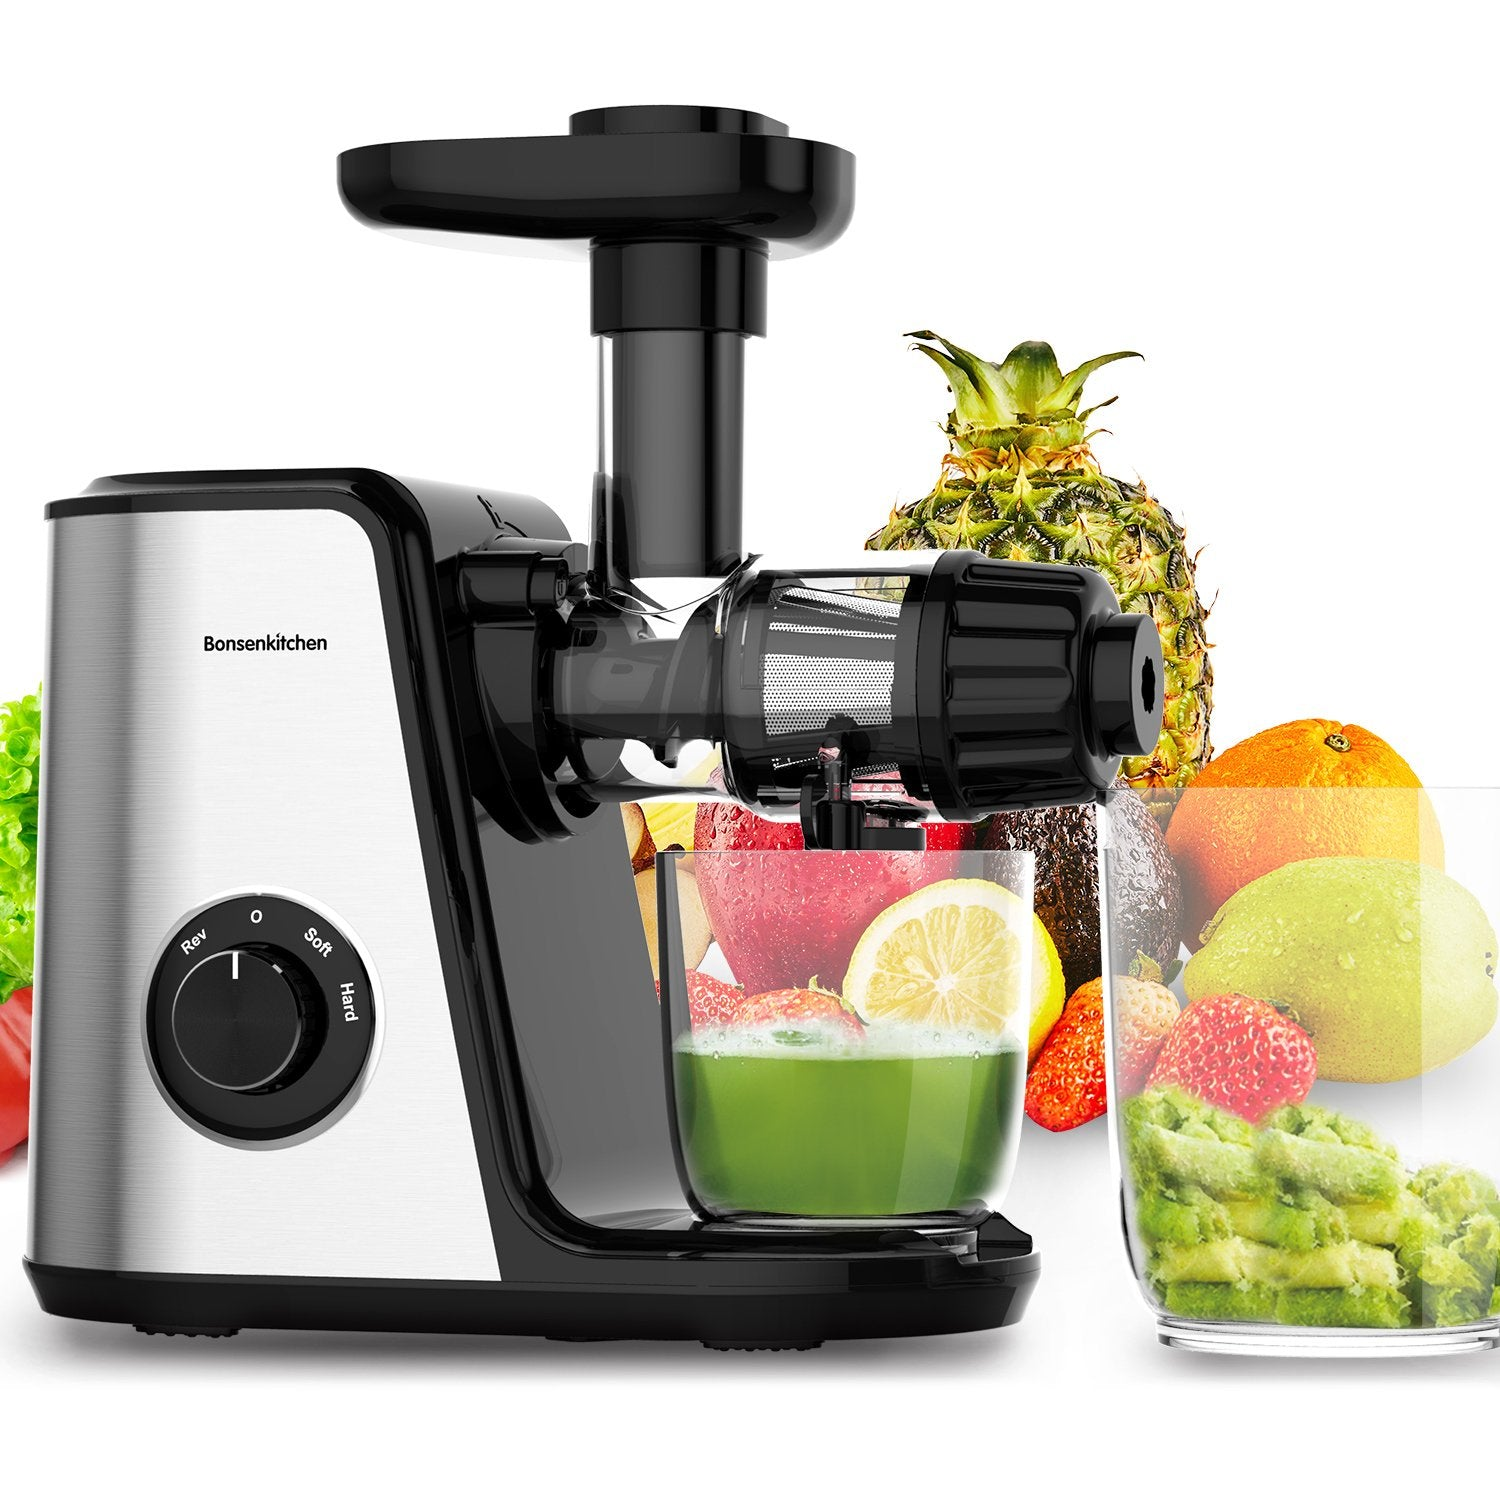 Bonsenkitchen MJ8901 Slow Masticating Juicer Extractor